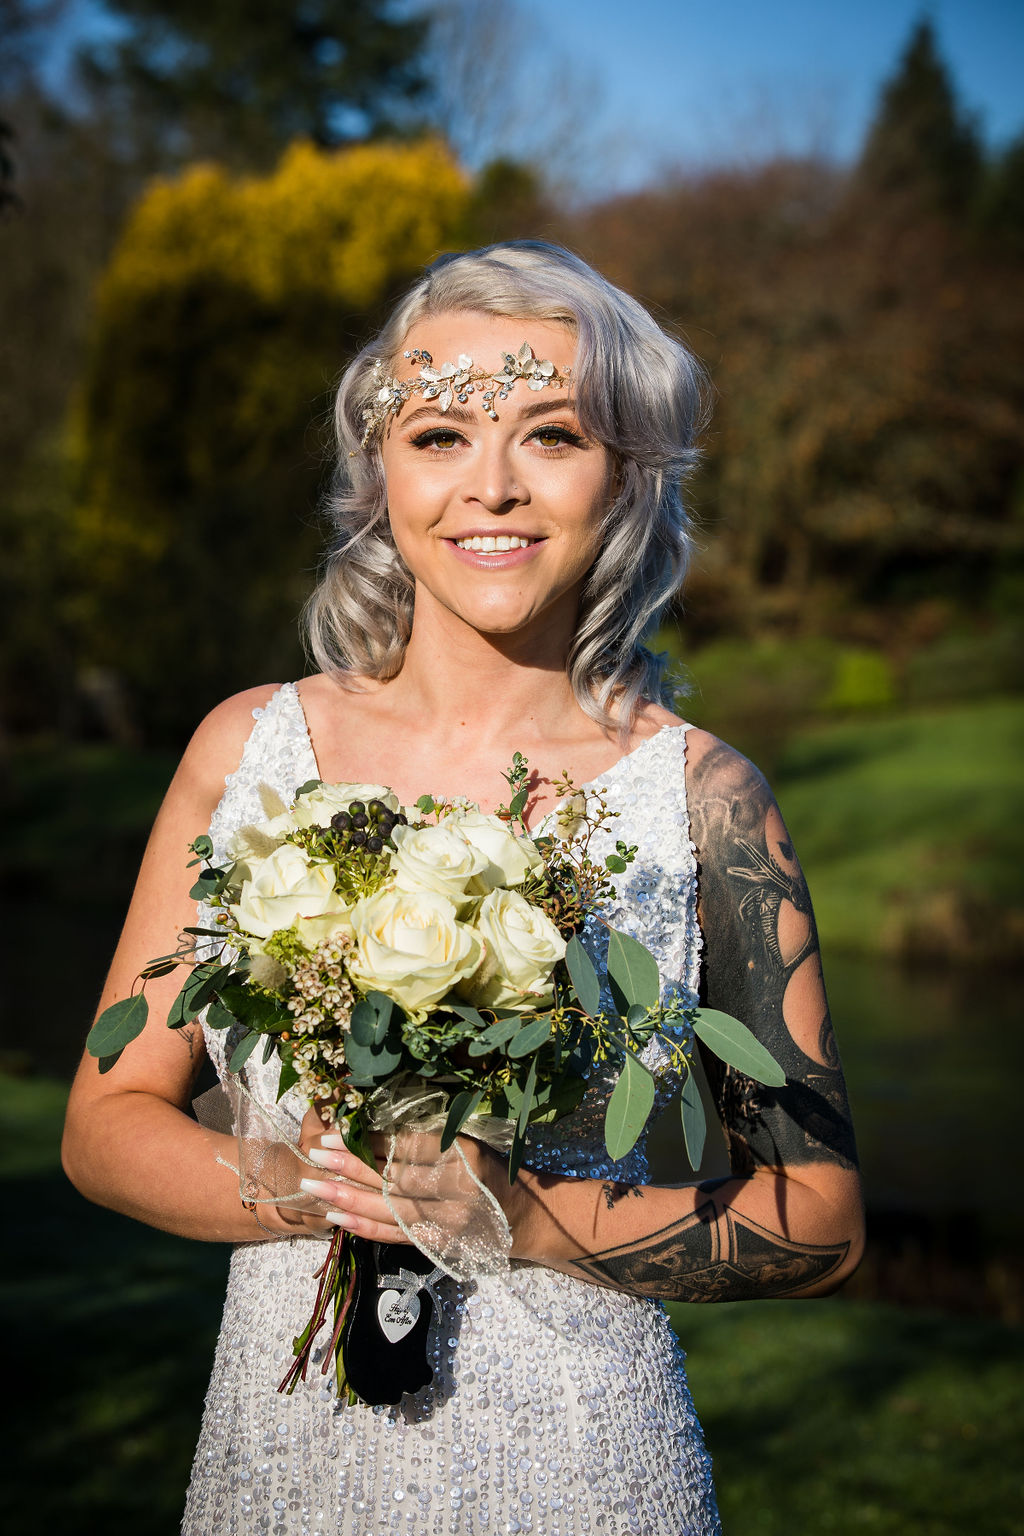 unique bridal headdress and sparkly wedding dress - unique bridalwear